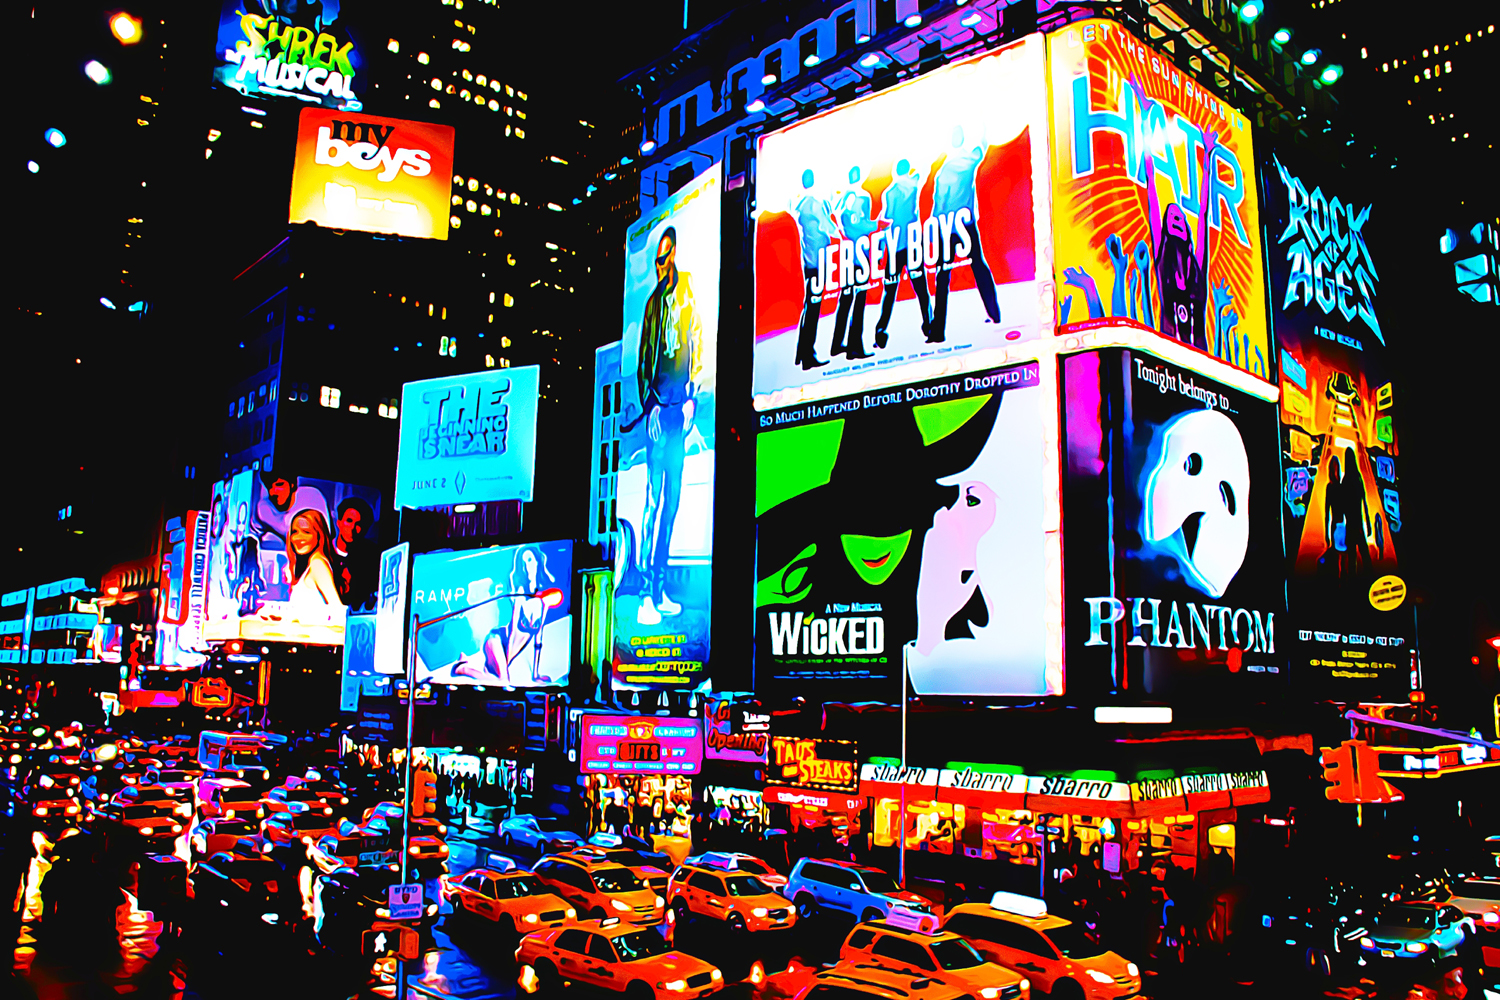 poster bild xxl pop art times square broadway new york neighborhood 120x80 ebay. Black Bedroom Furniture Sets. Home Design Ideas